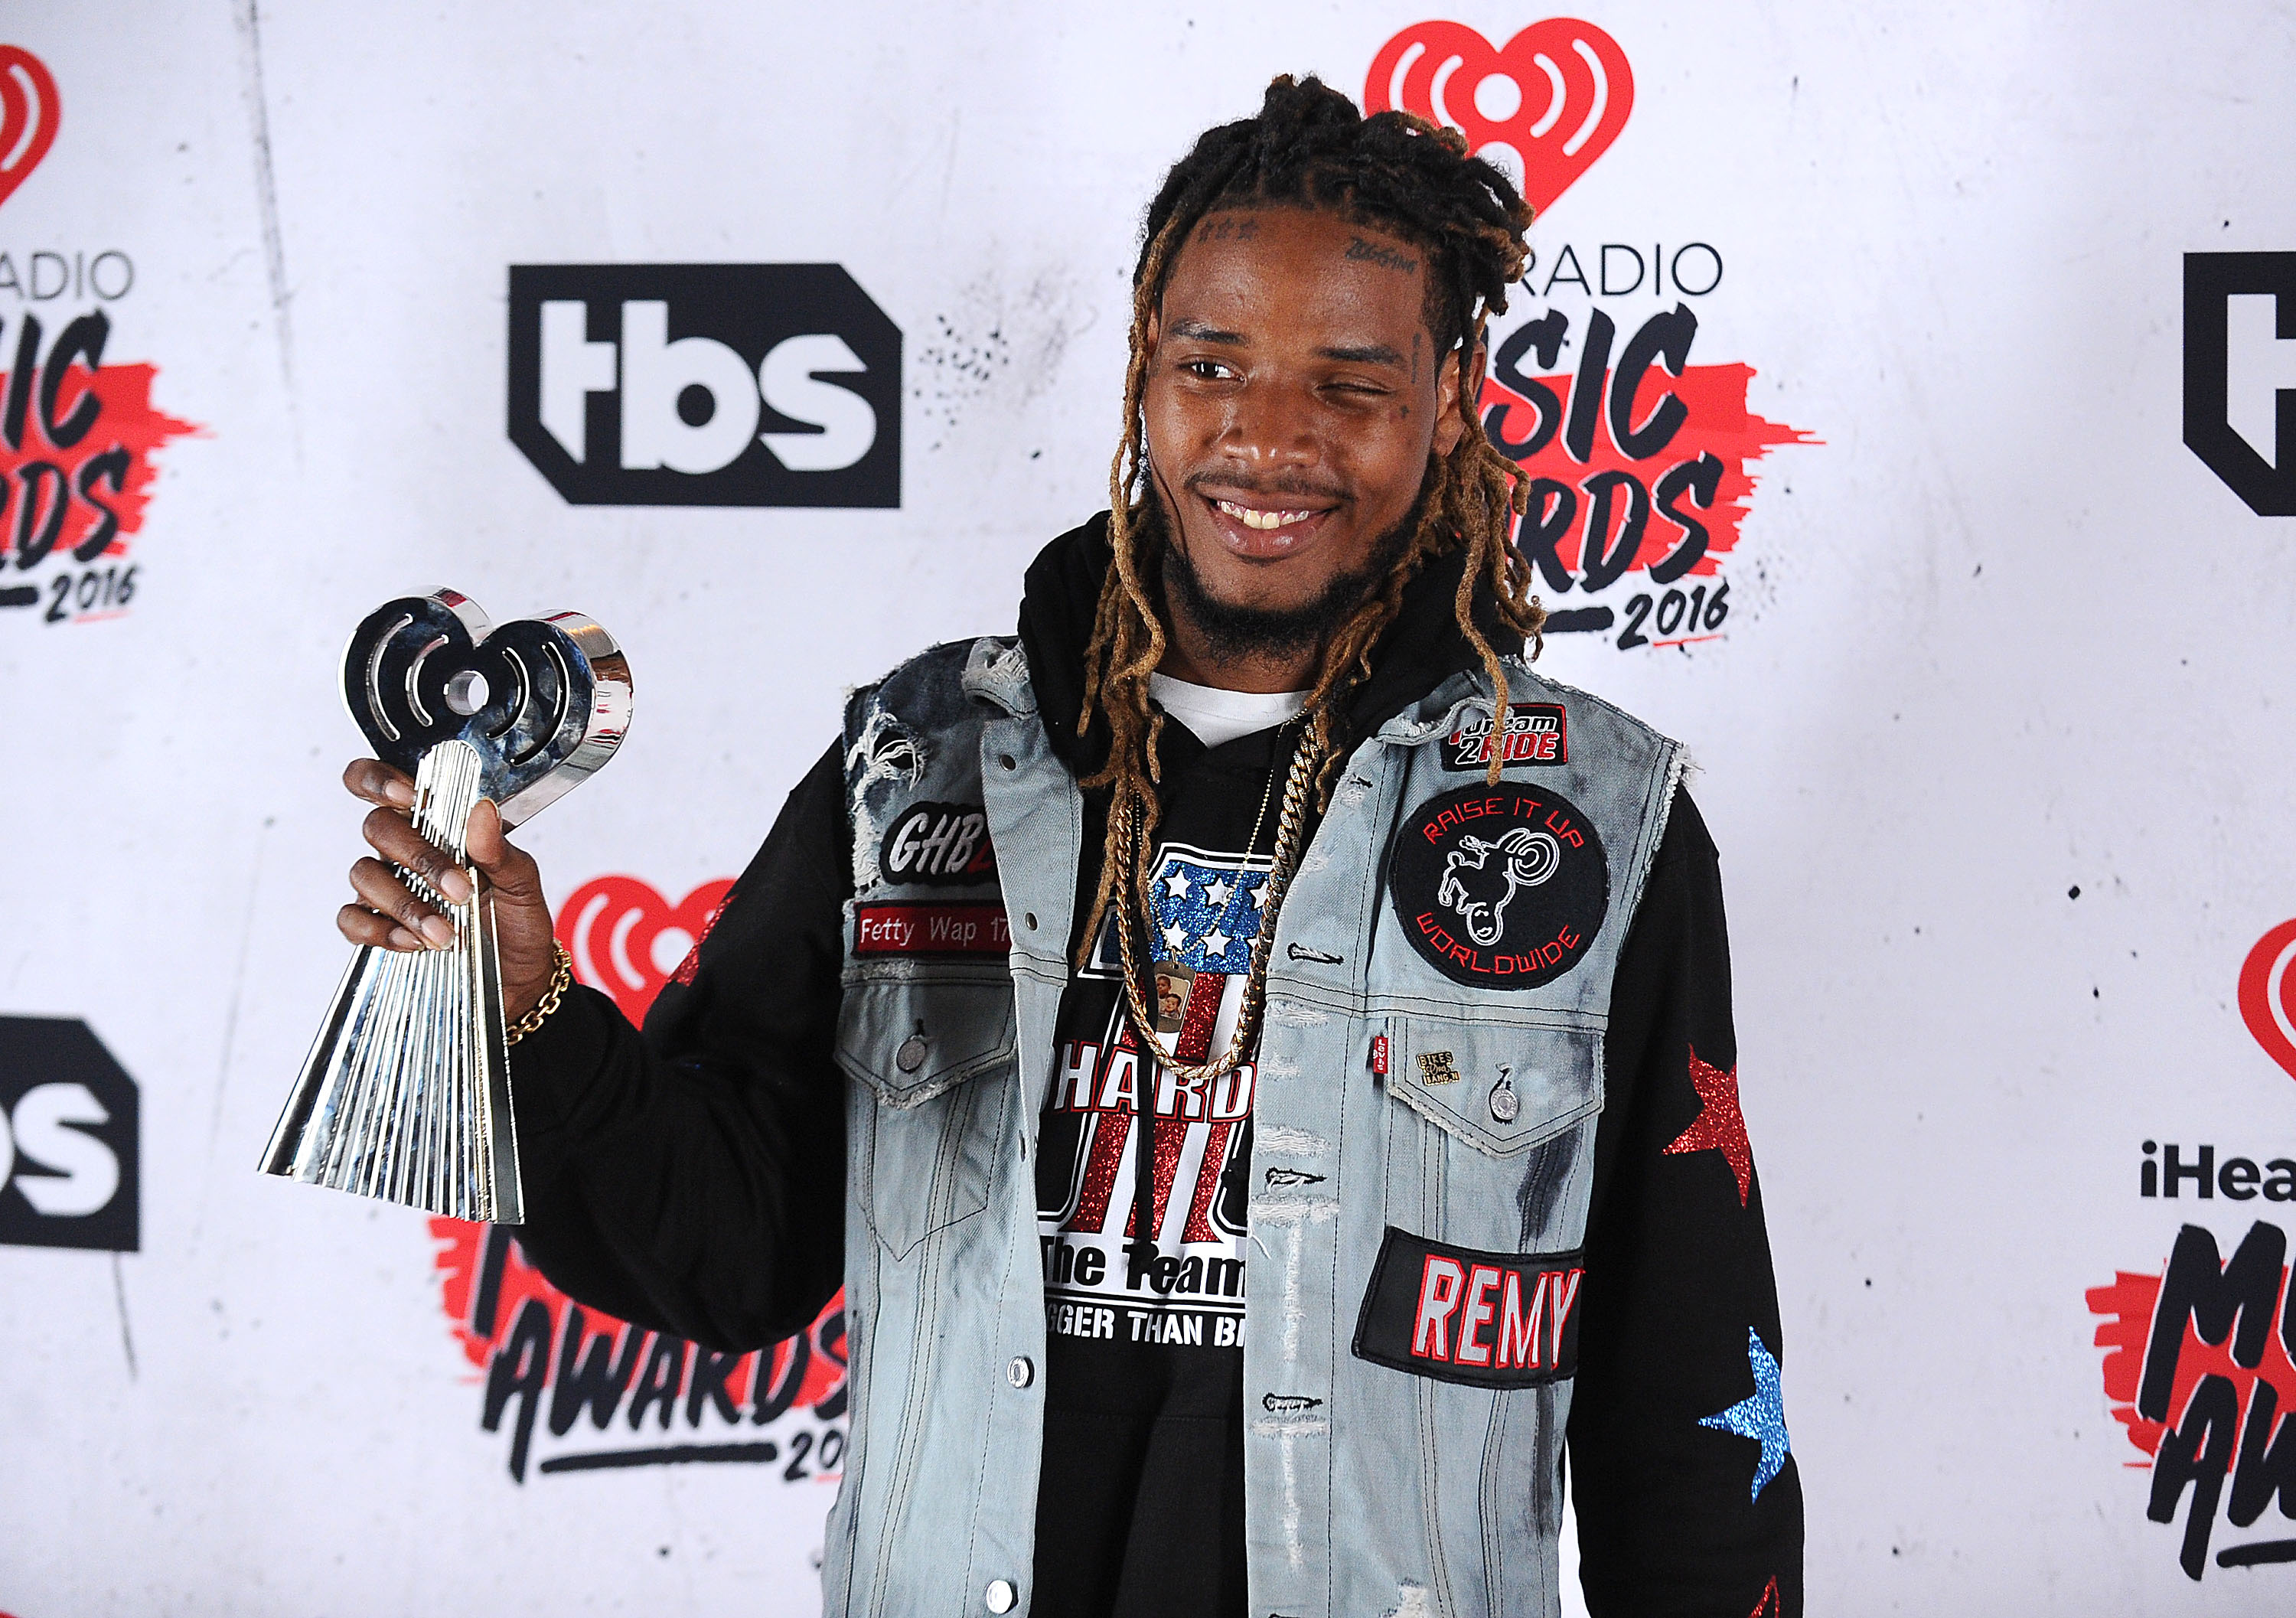 INGLEWOOD, CALIFORNIA - APRIL 03: Fetty Wap poses in the press room at the iHeartRadio Music Awards at The Forum on April 3, 2016 in Inglewood, California. (Photo by Jason LaVeris/FilmMagic)